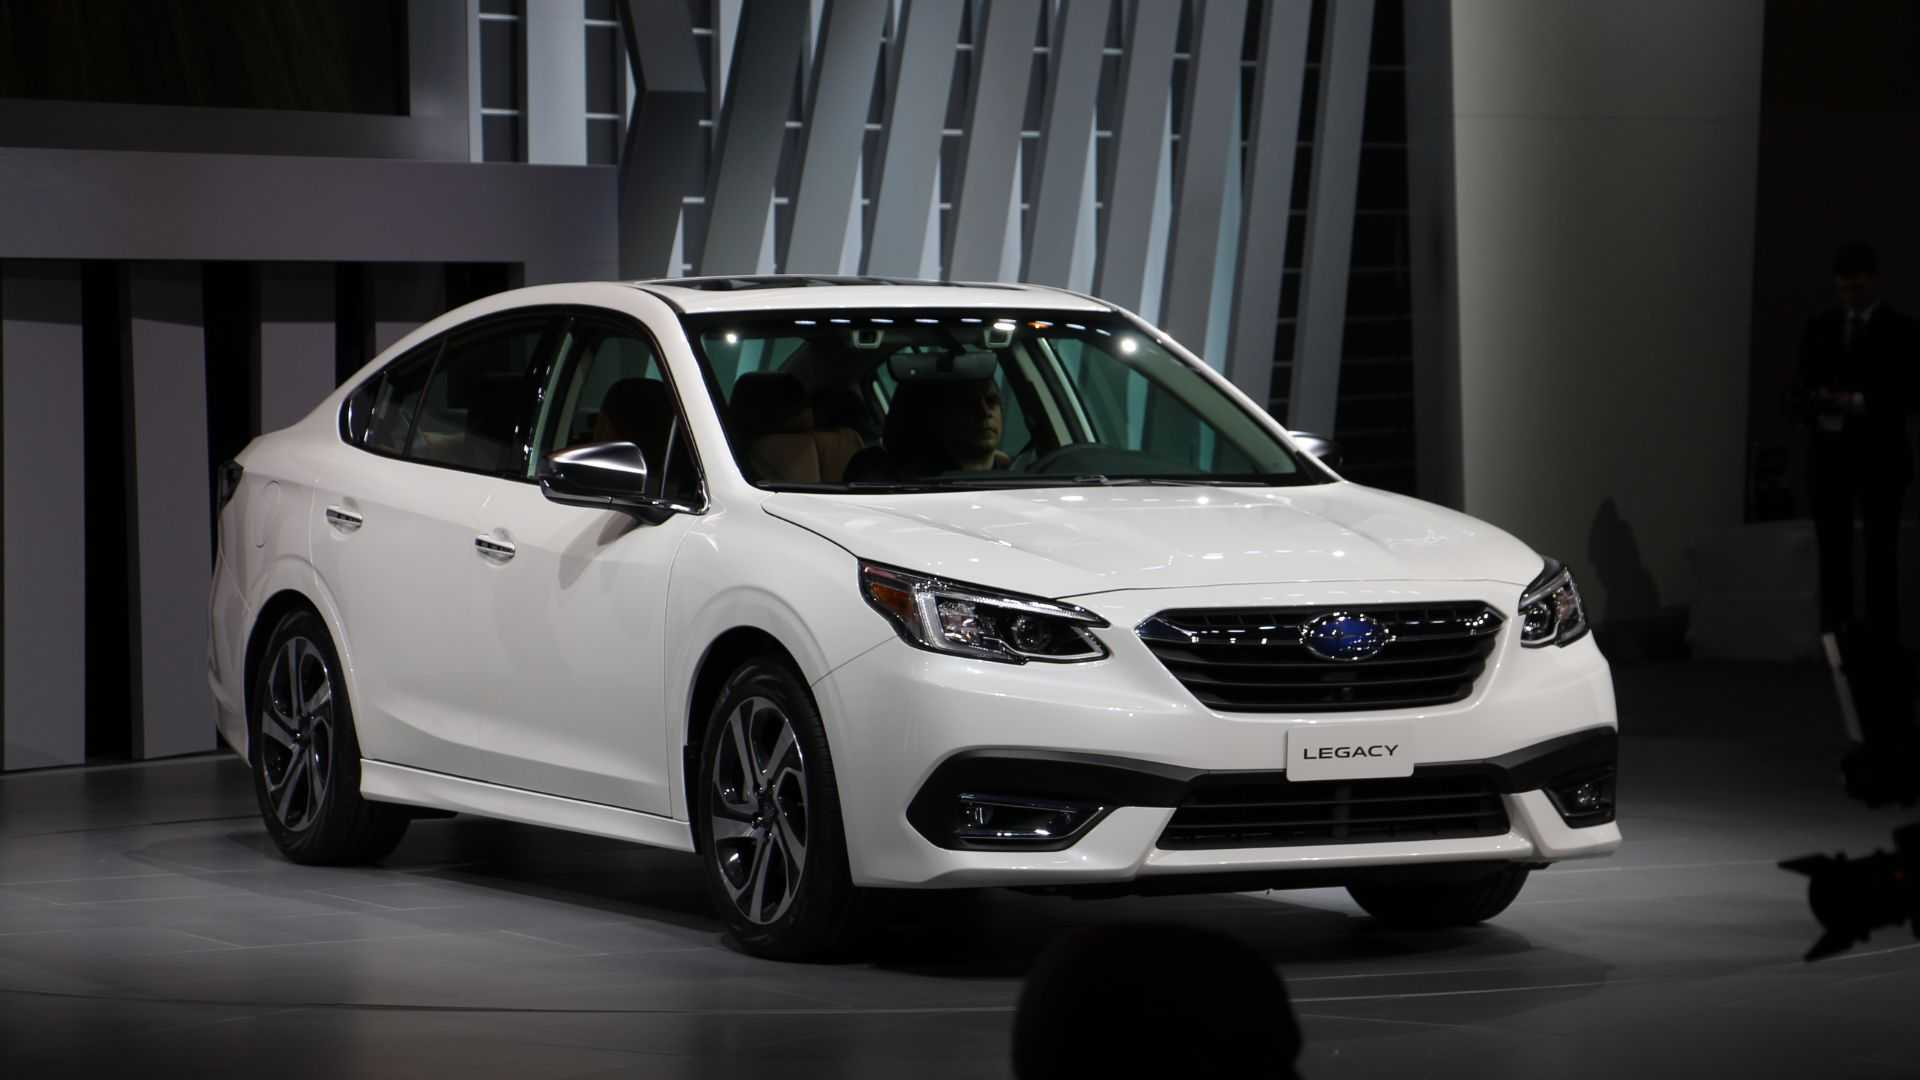 99 All New 2020 Subaru Legacy Price Specs and Review by 2020 Subaru Legacy Price